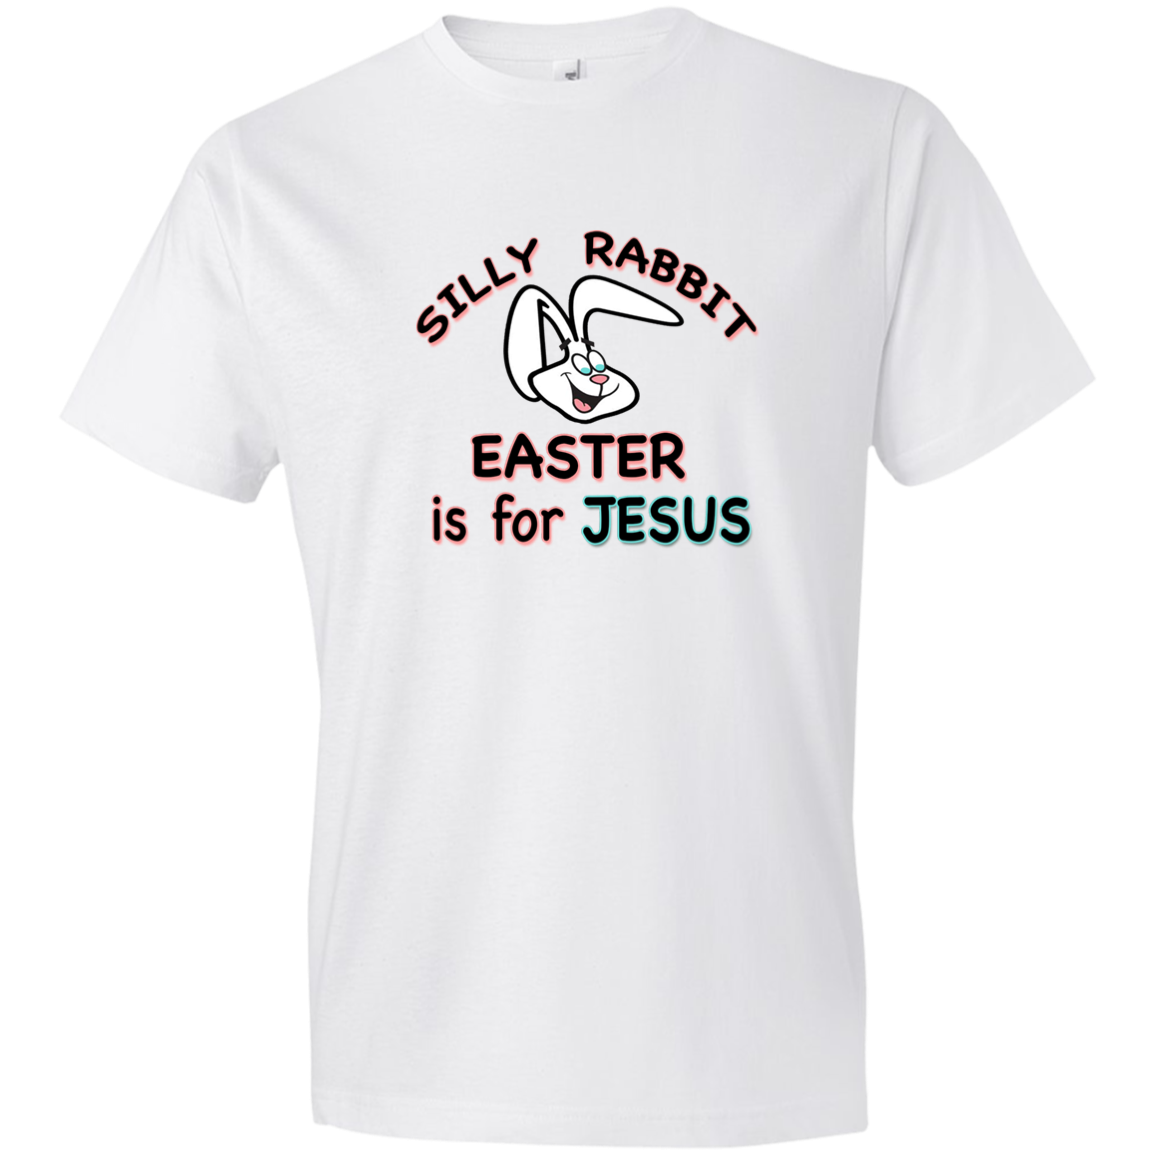 Christian T-Shirt - Silly Rabbit Easter is for Jesus